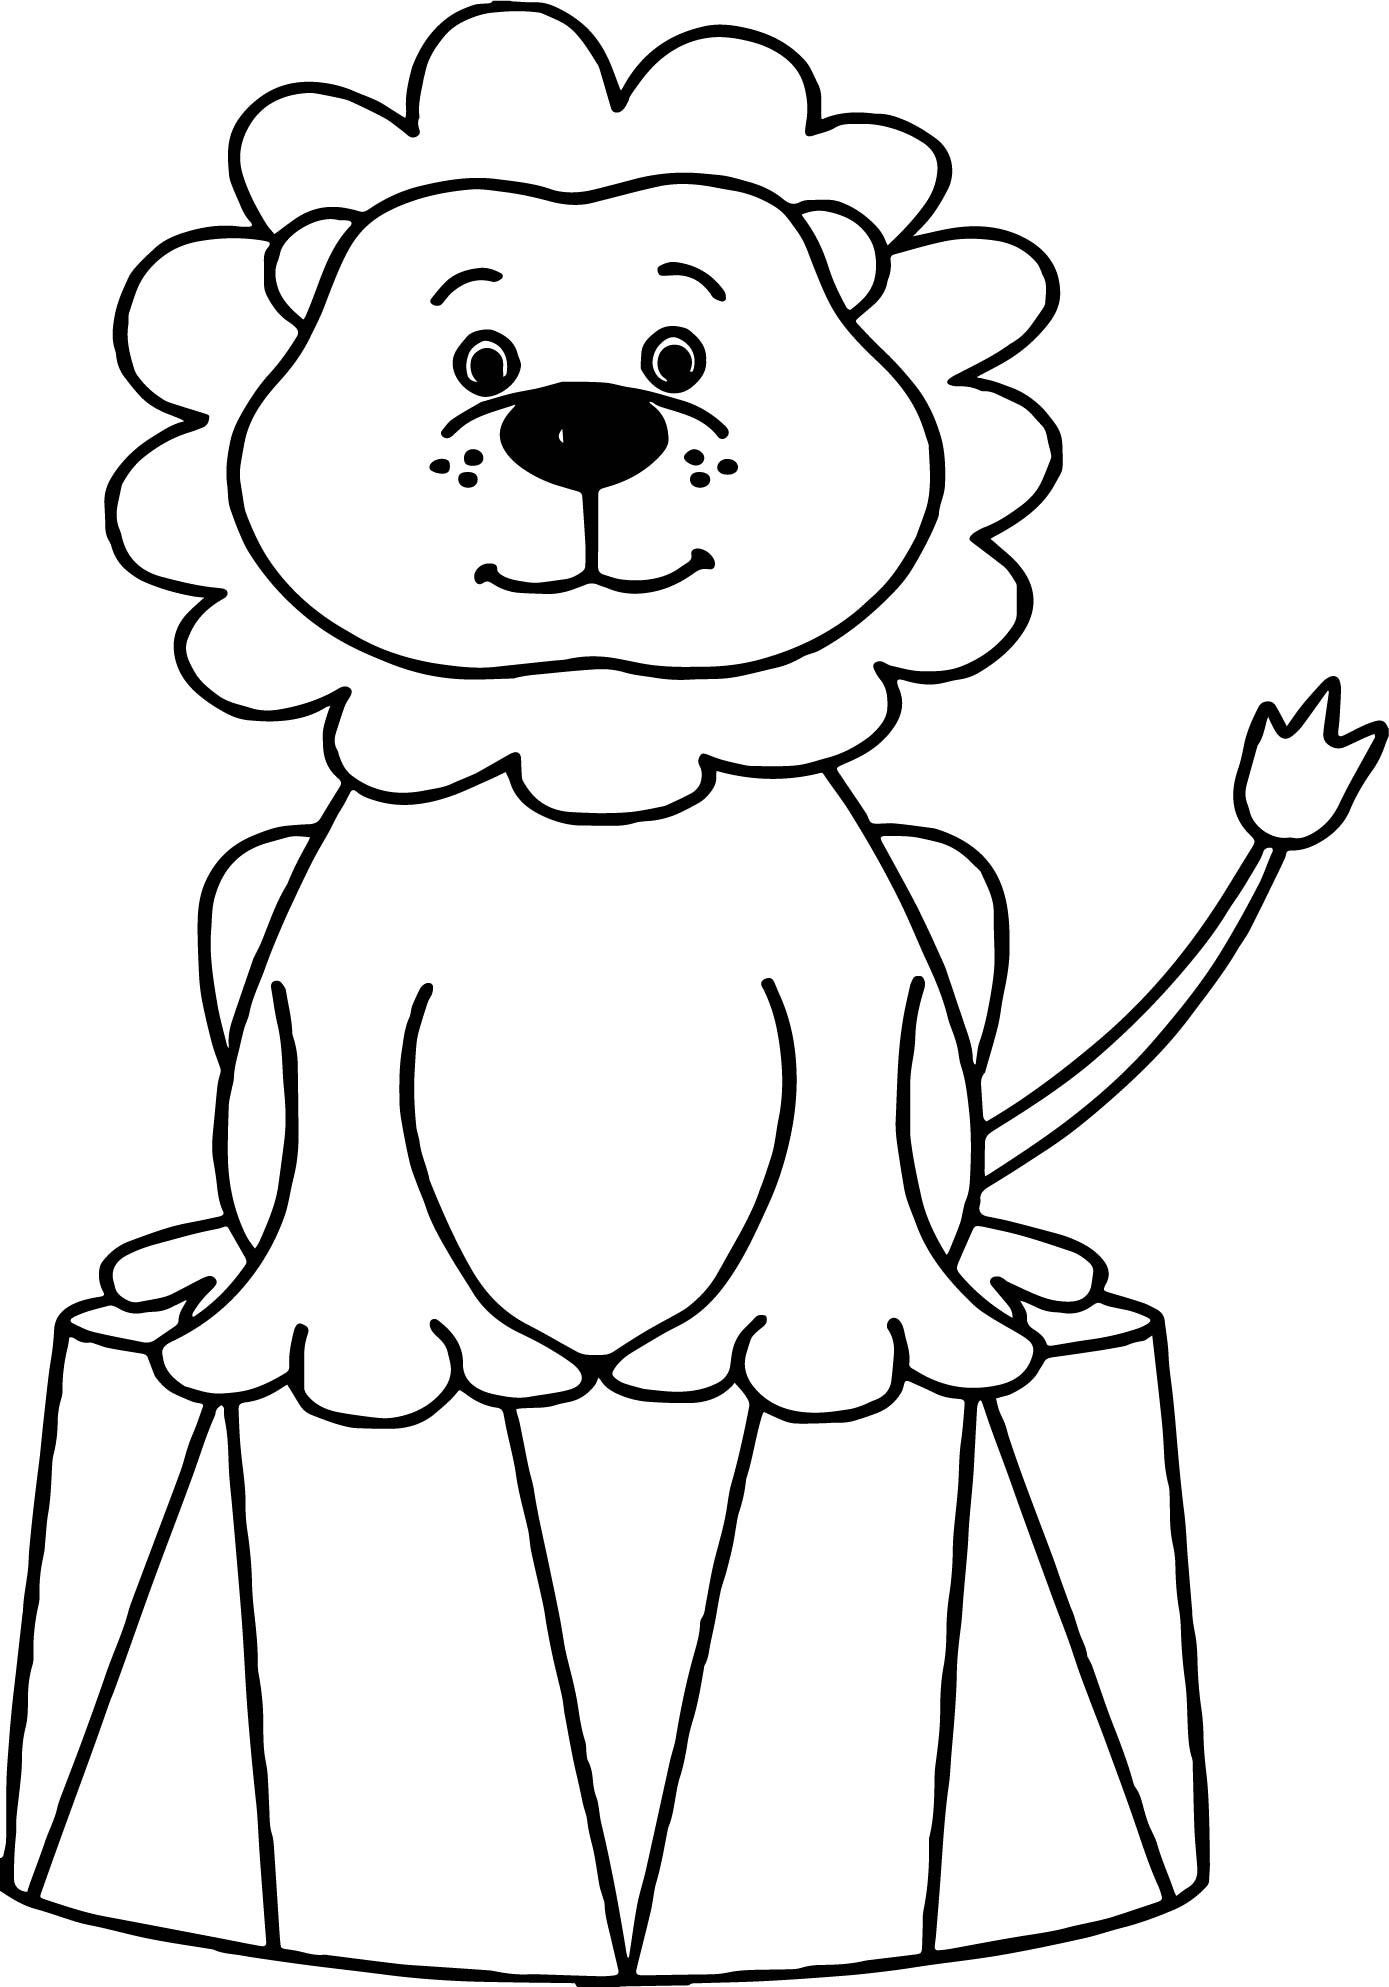 Printable Coloring Pages Of Circus Animals New Circus Coloring Pages Unique Lion Circus Animals Lion Coloring Pages Animal Coloring Pages Animal Coloring Books